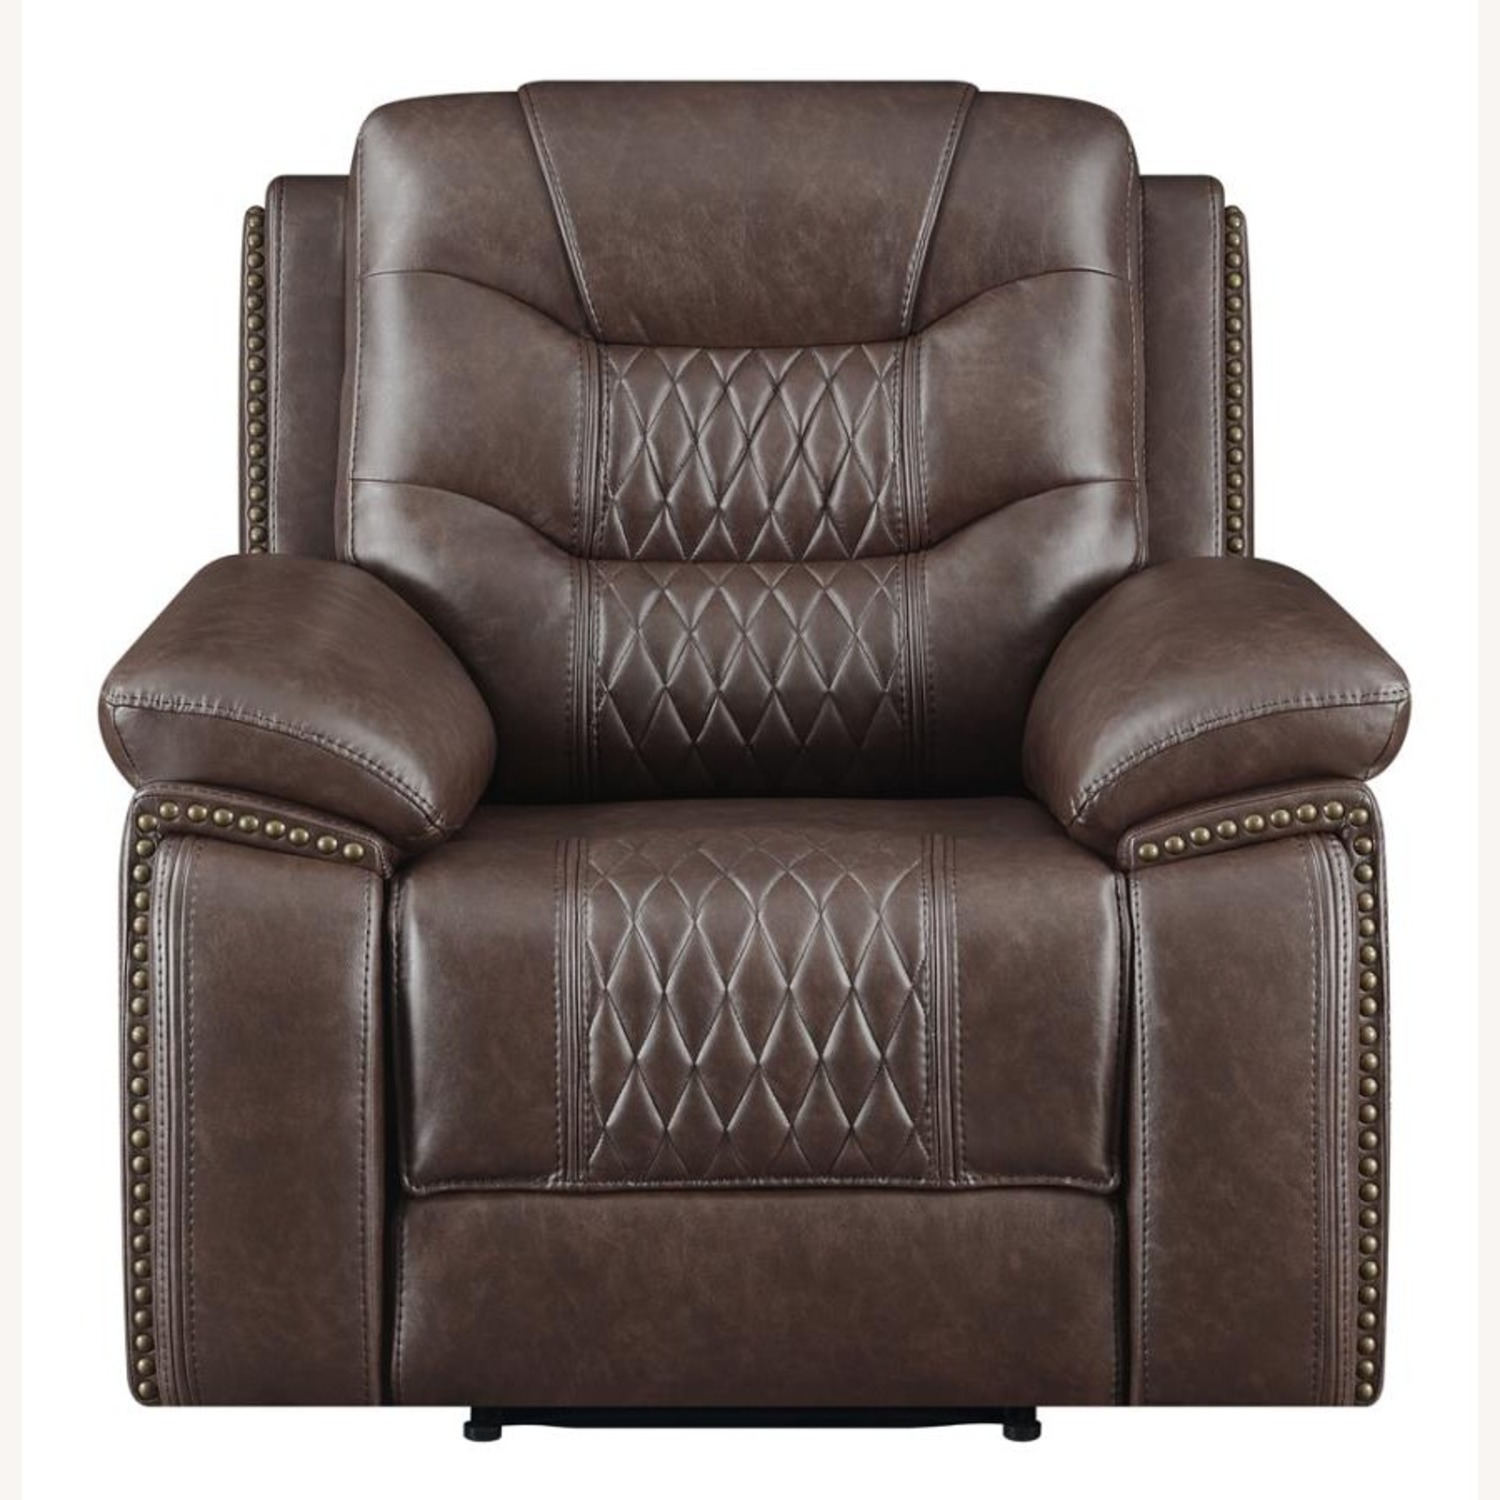 Recliner In Comfortable Brown Performance Leather - image-1